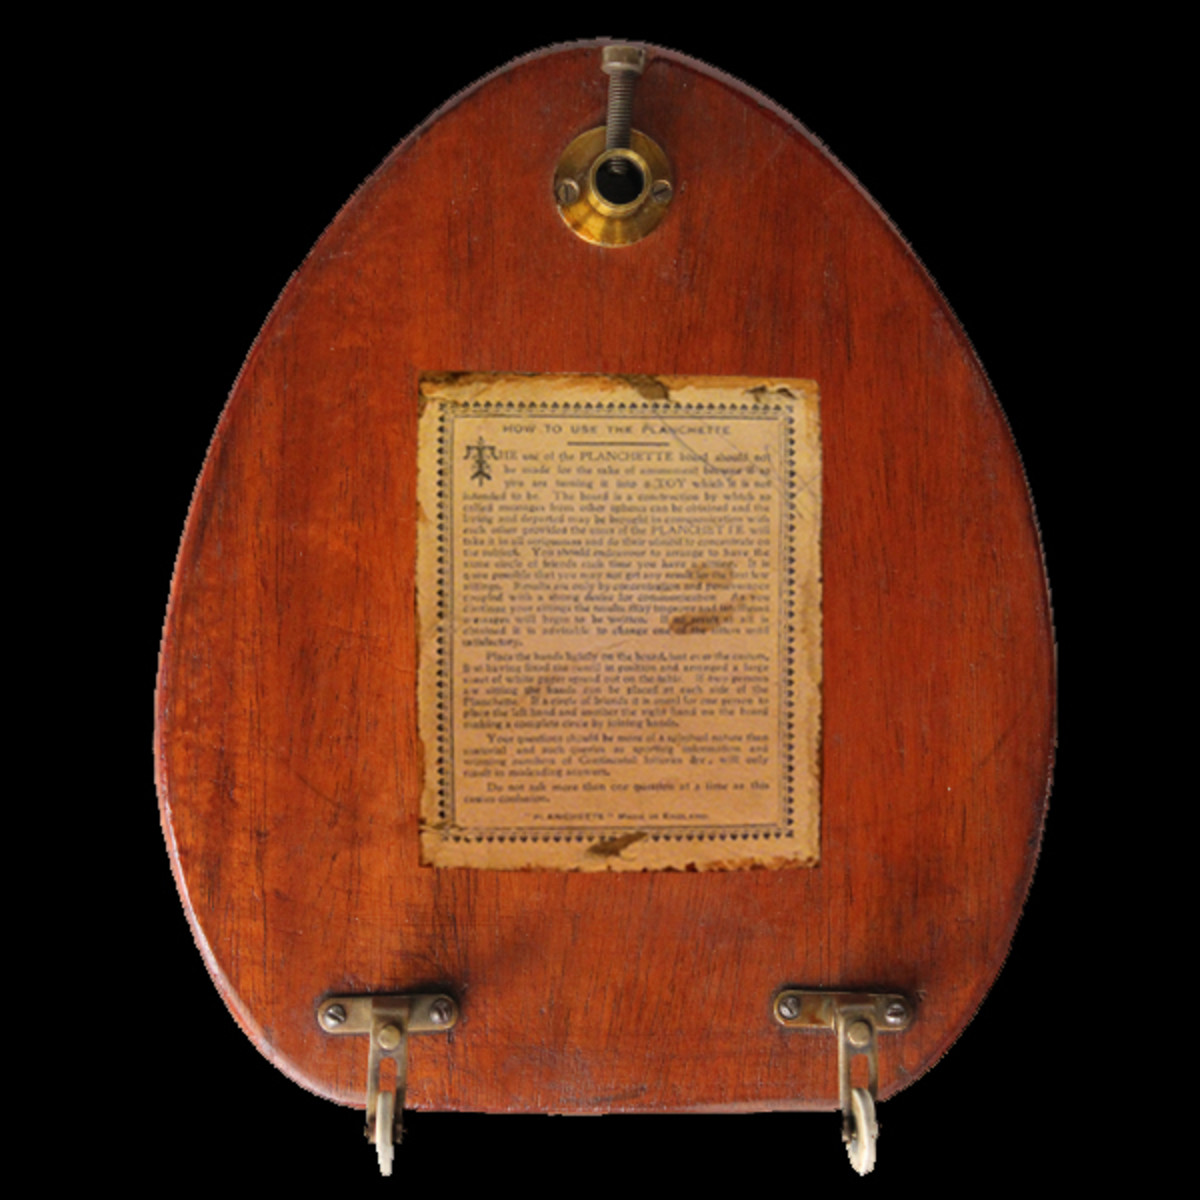 An early British automatic writing planchette, possibly of Thomas Welton, 1860s.